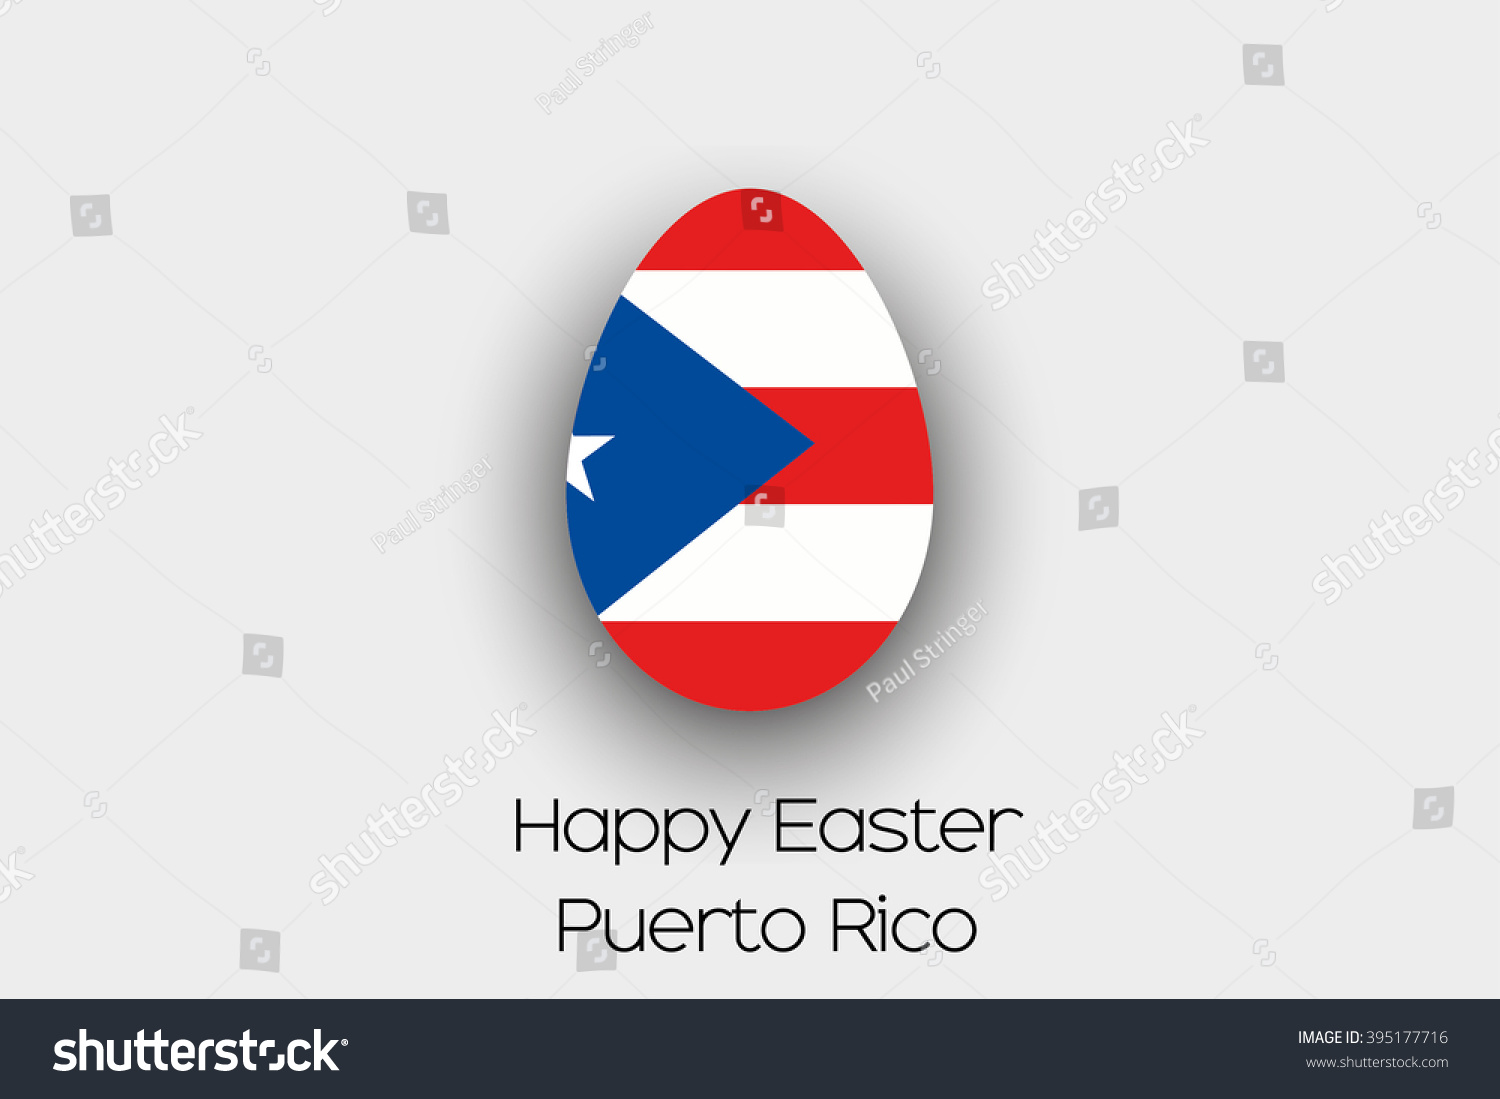 Easter egg flag illustration country puerto stock vector 395177716 an easter egg flag illustration of the country of puerto rico biocorpaavc Choice Image